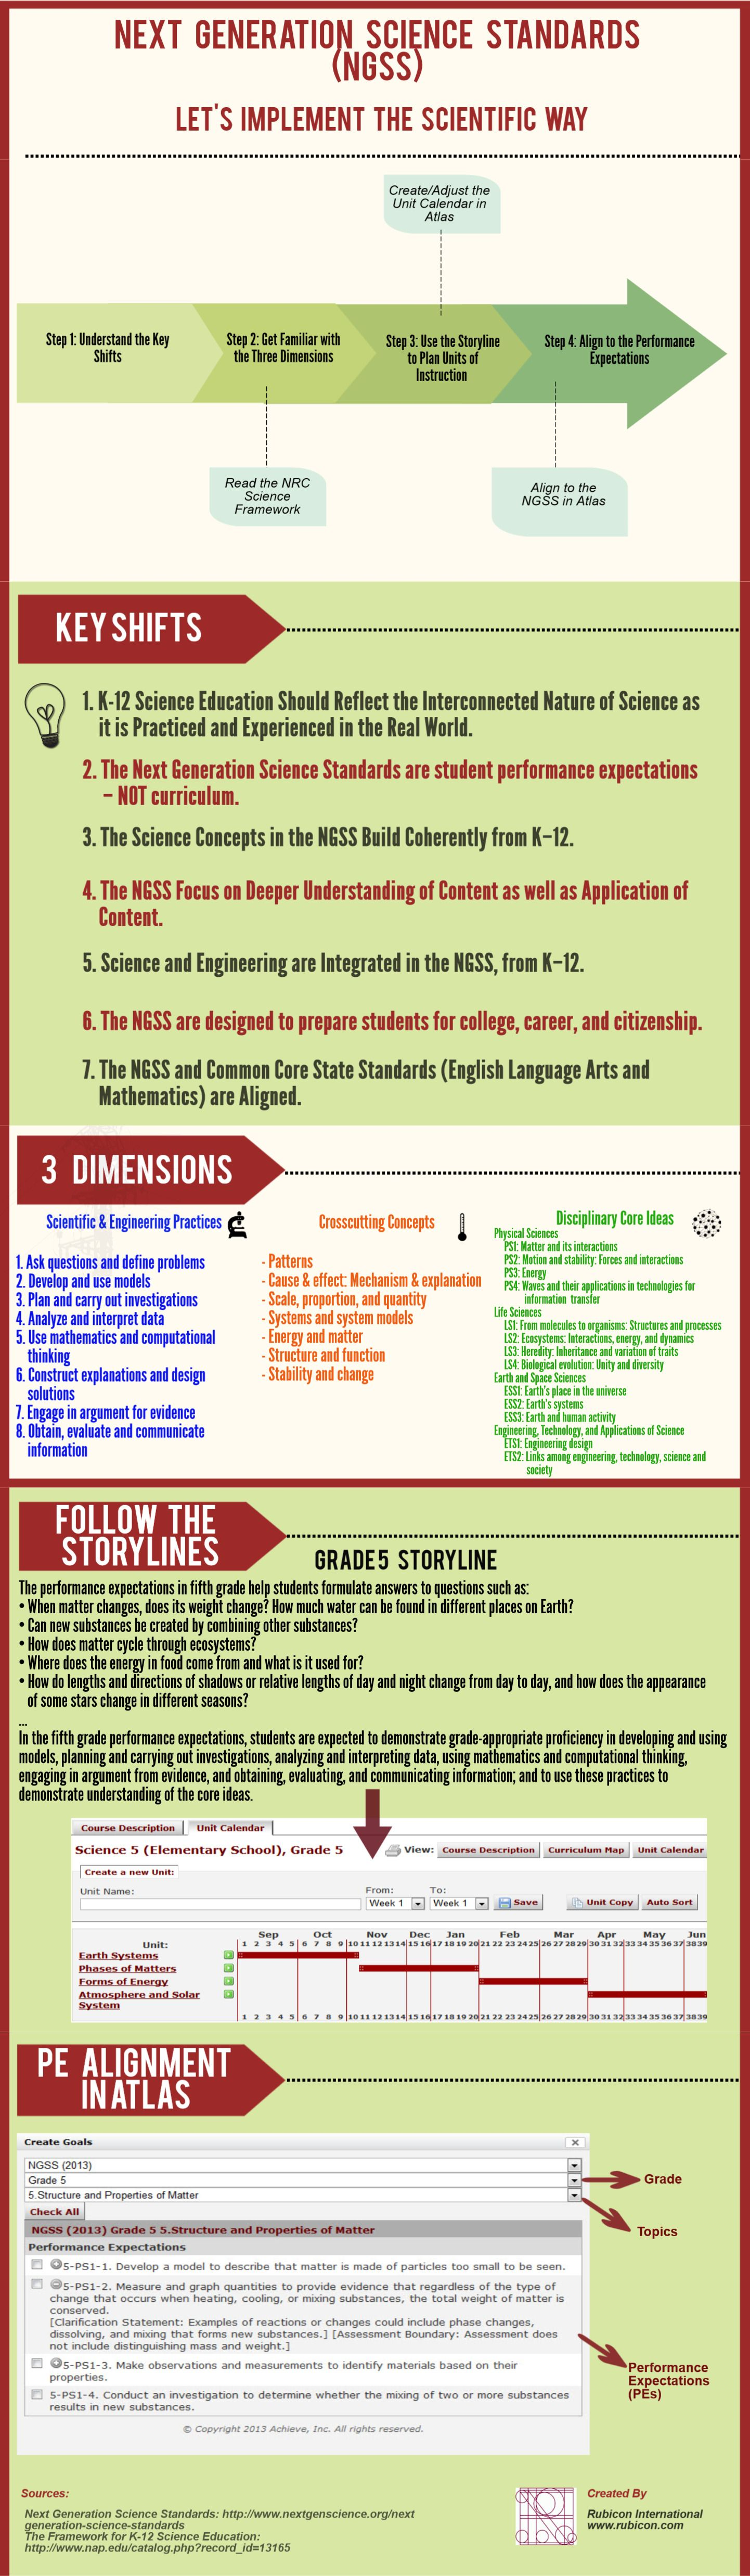 Next Generation Science Standards Ngss Let S Implement The Scientific Way